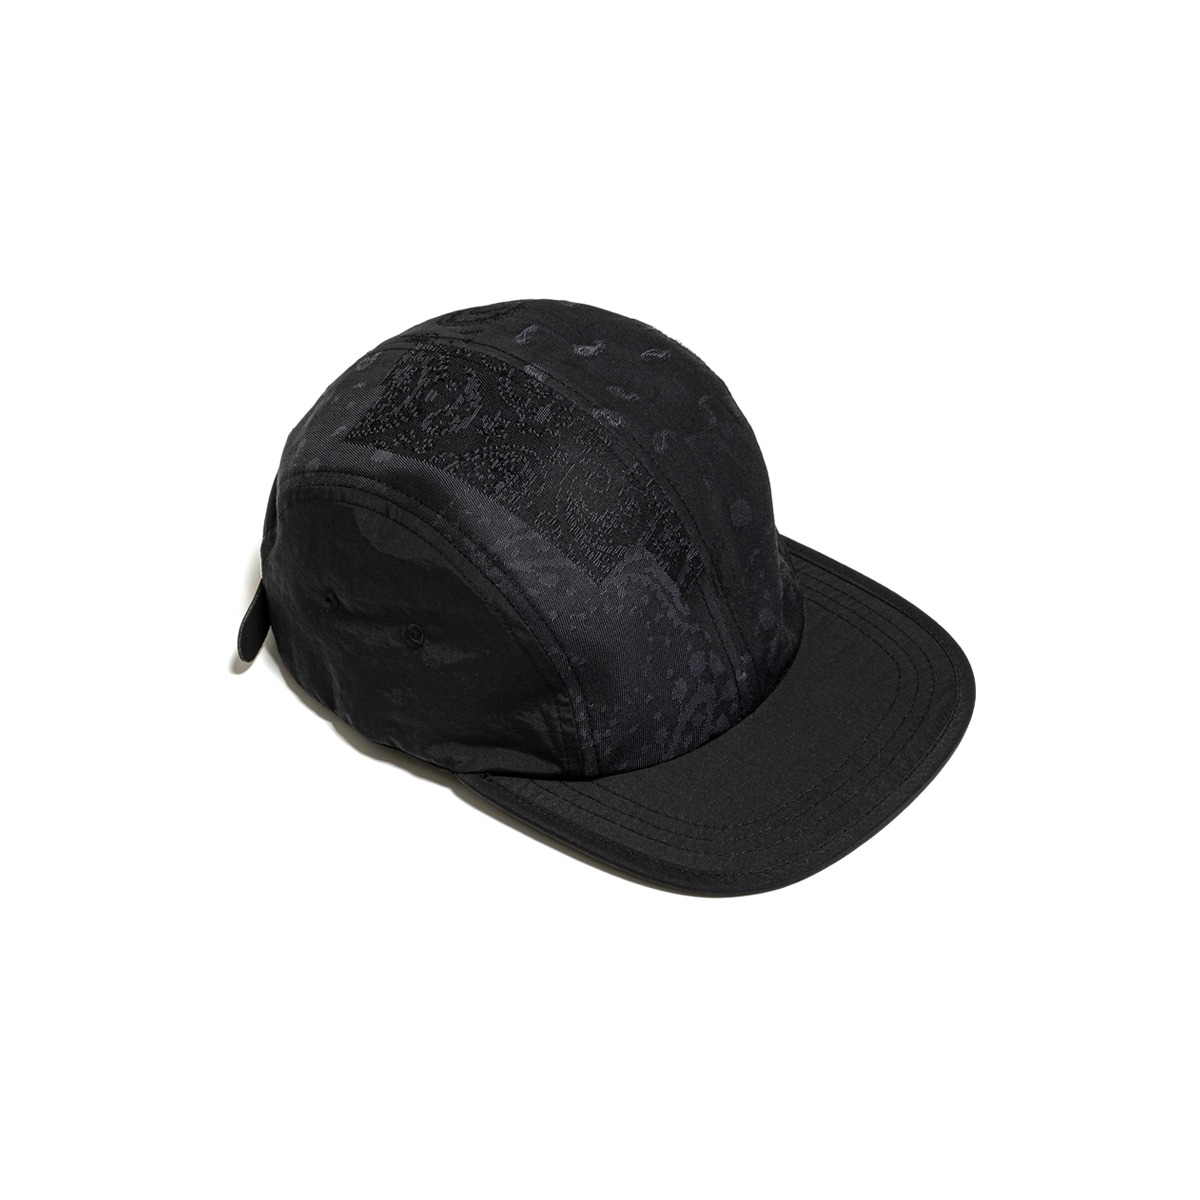 [EASTLOGUE] B2 CAP 'BLACK JACQUARD'